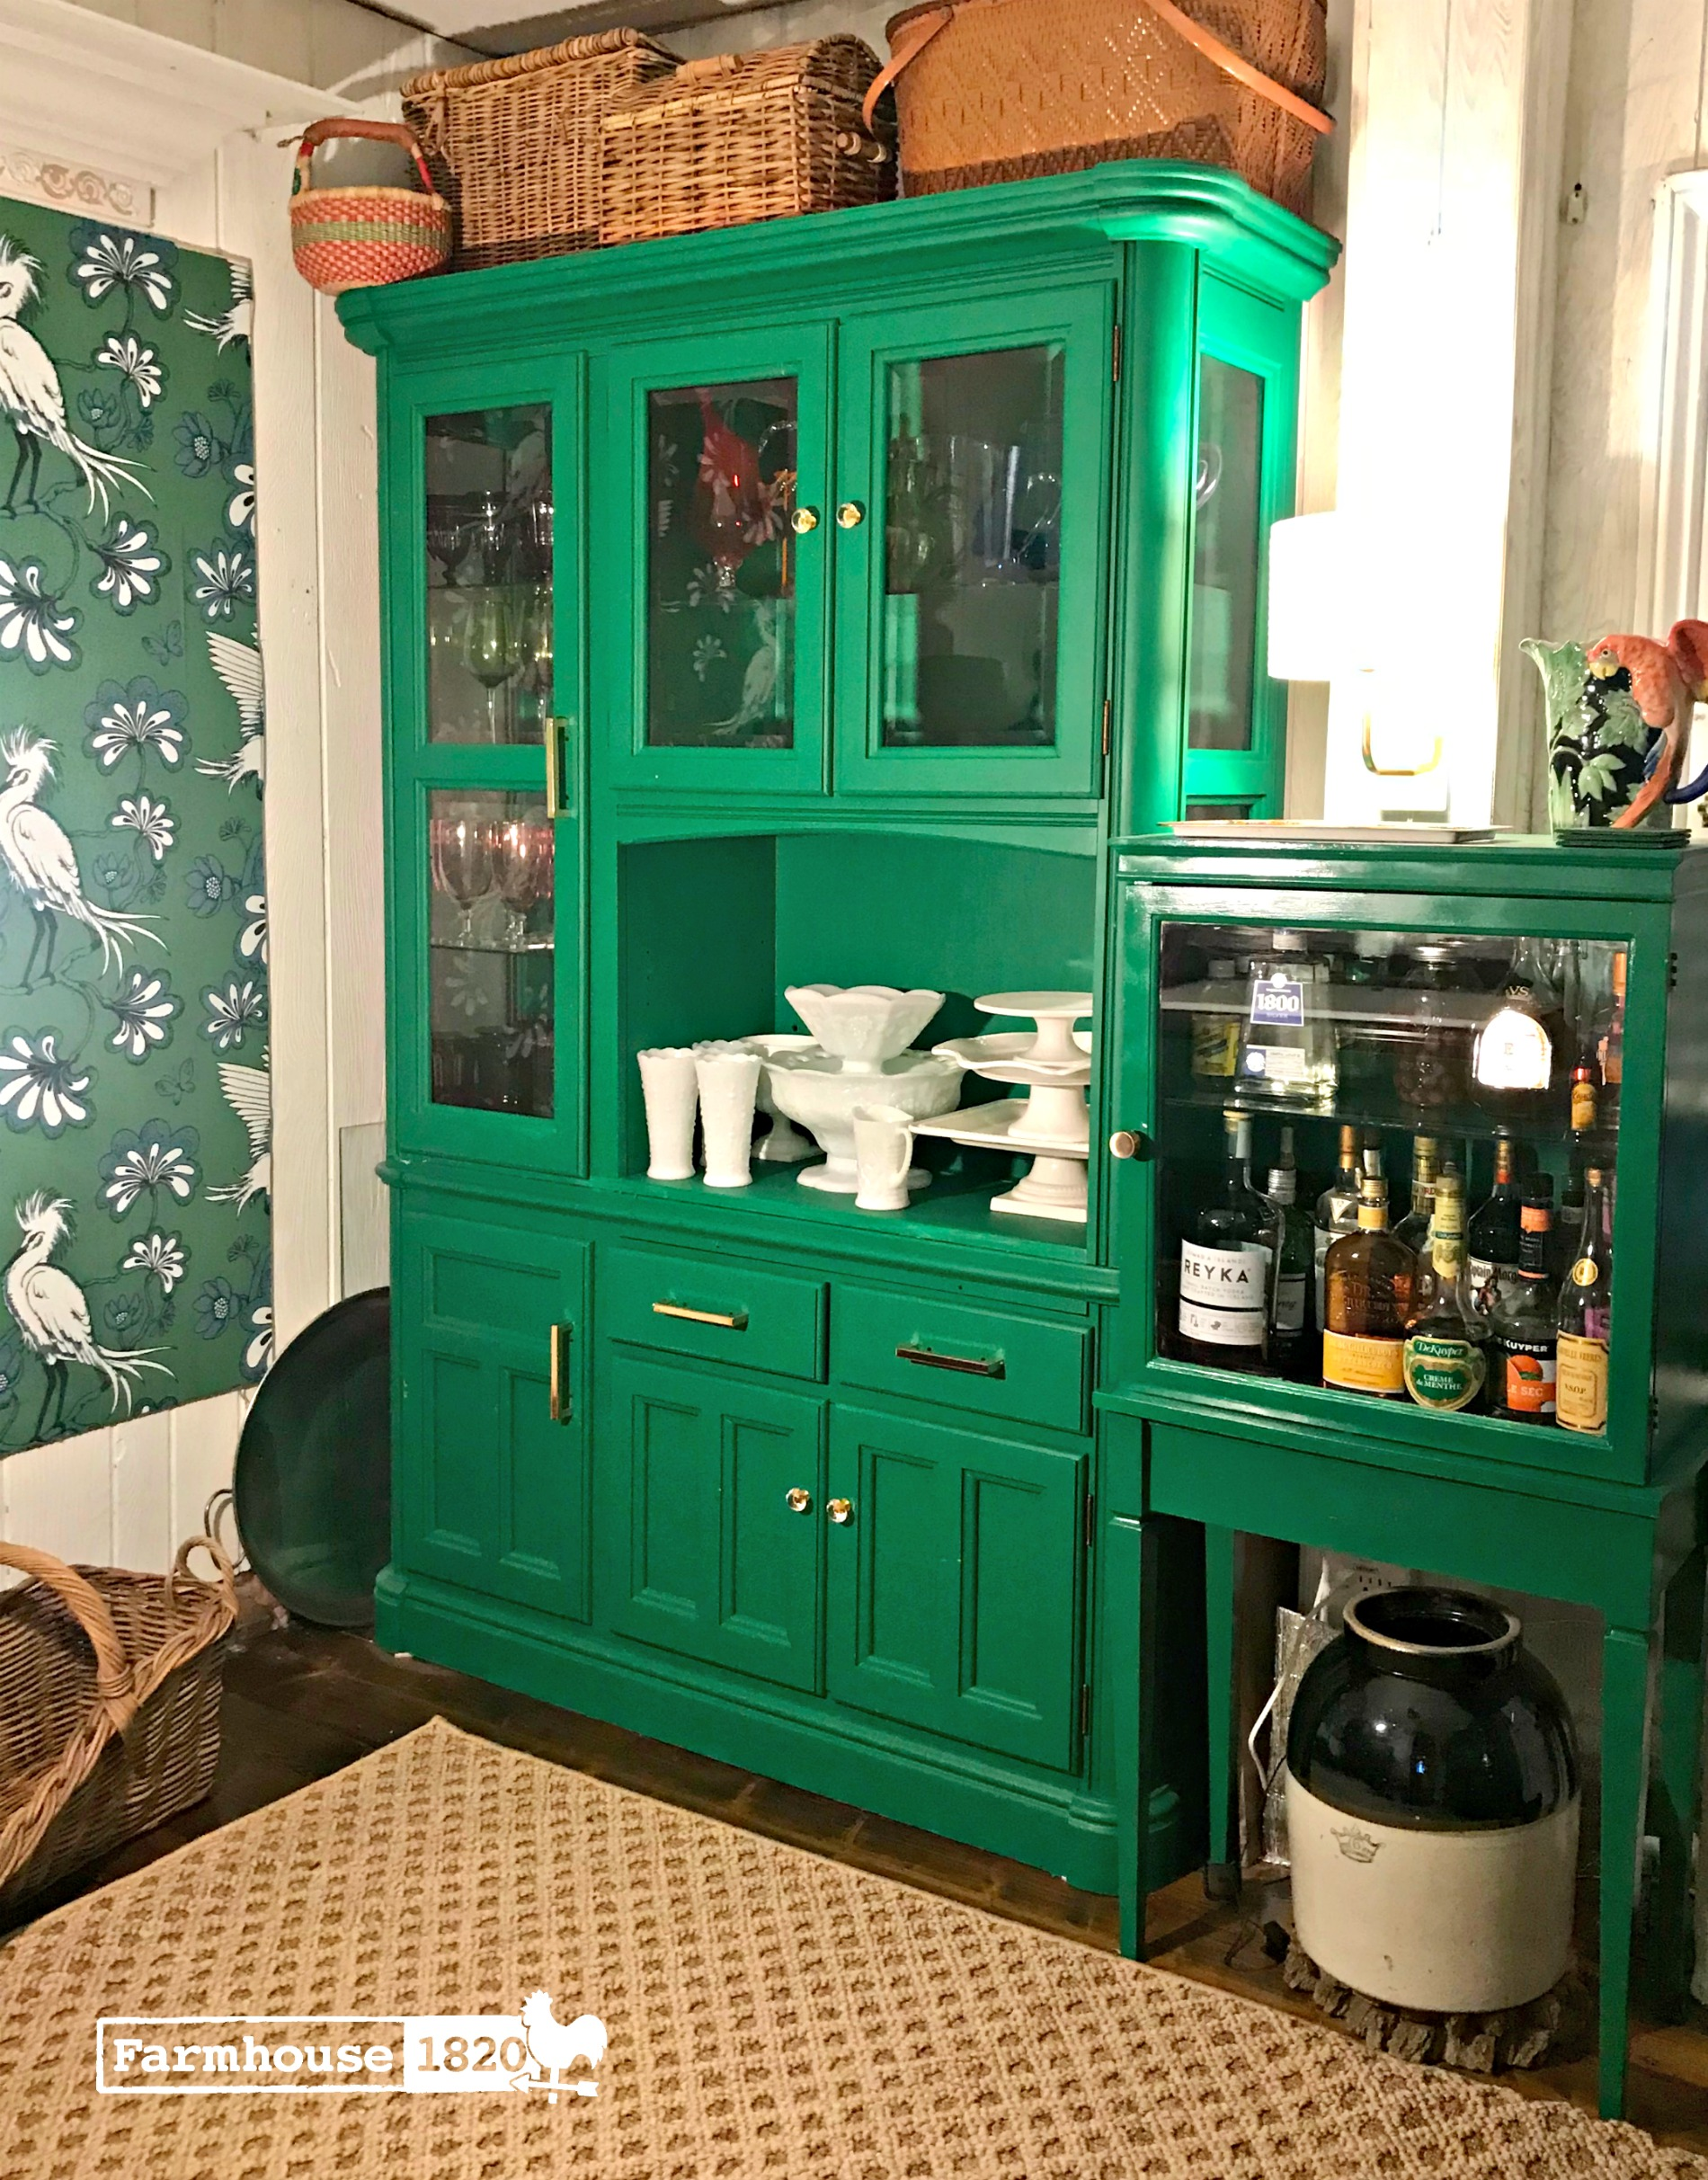 Love this emerald green painted cabinet